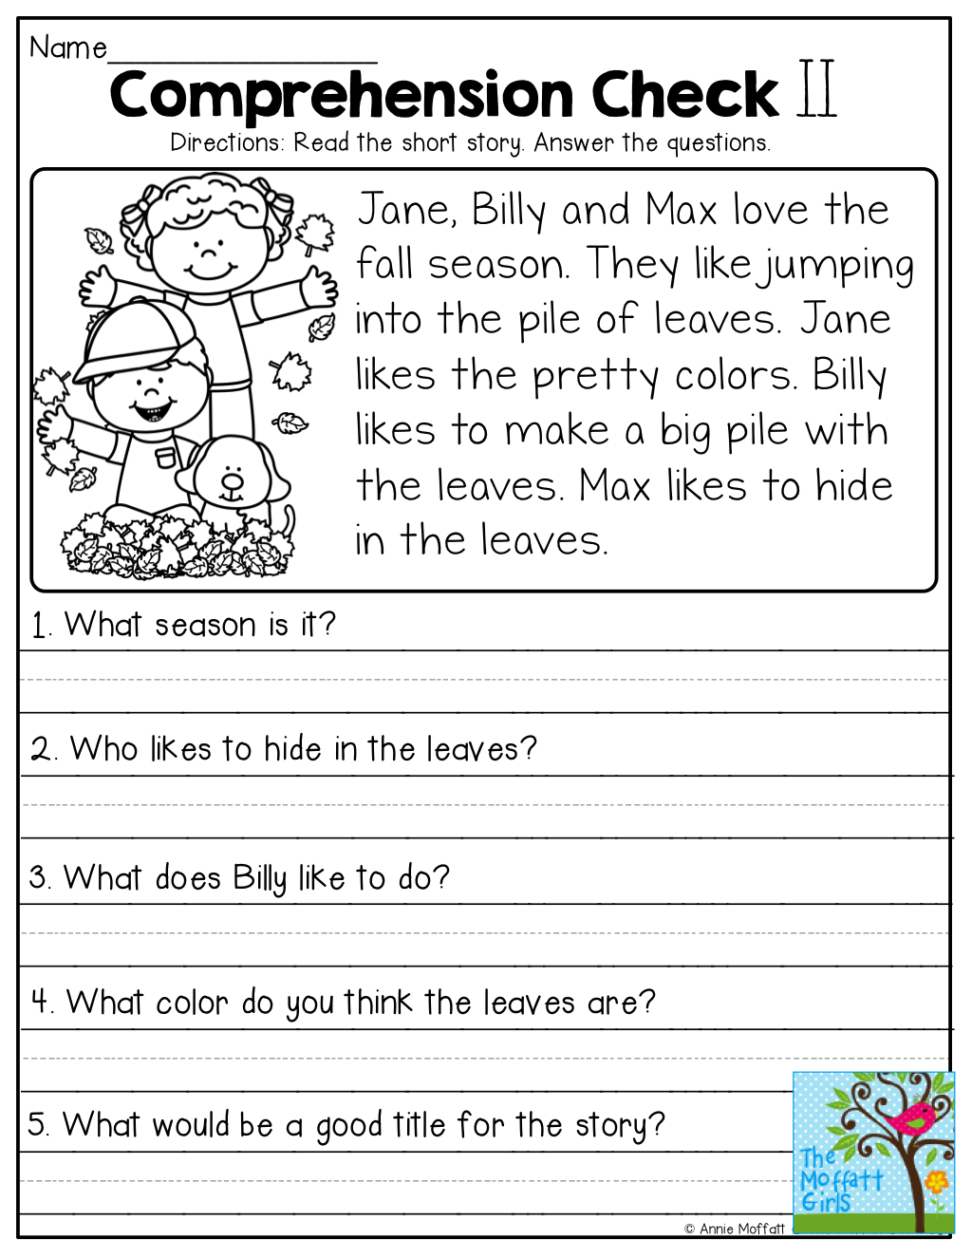 Worksheet. Free Printable Reading Comprehension Worksheets - Free | Free Printable Reading Comprehension Worksheets For Kindergarten